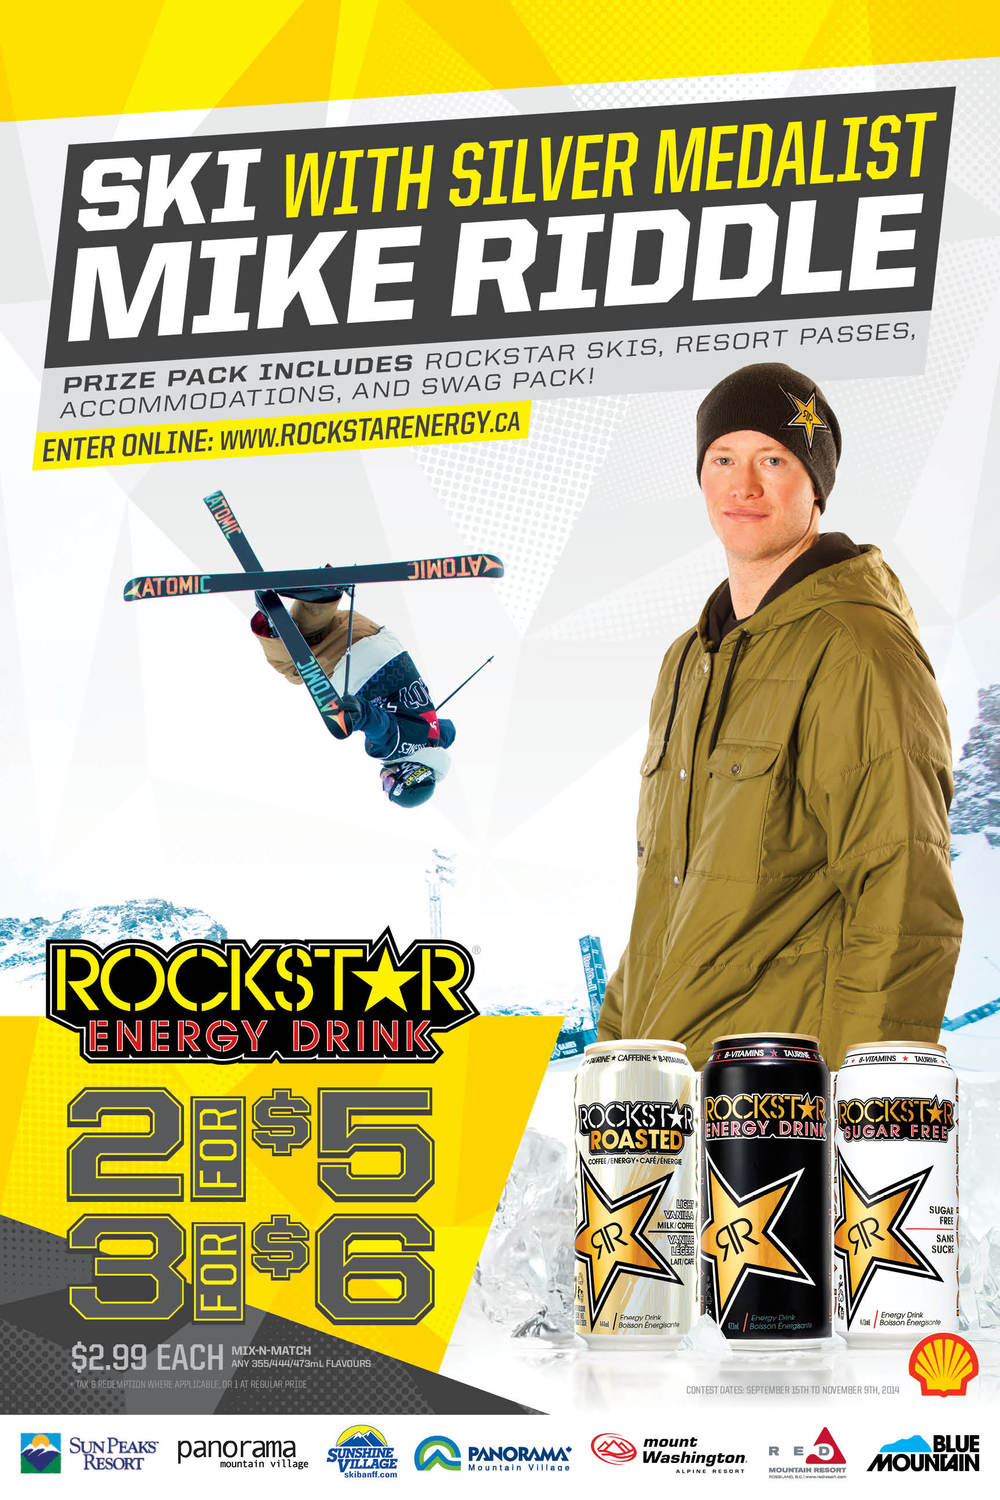 Mike Riddle / Rockstar